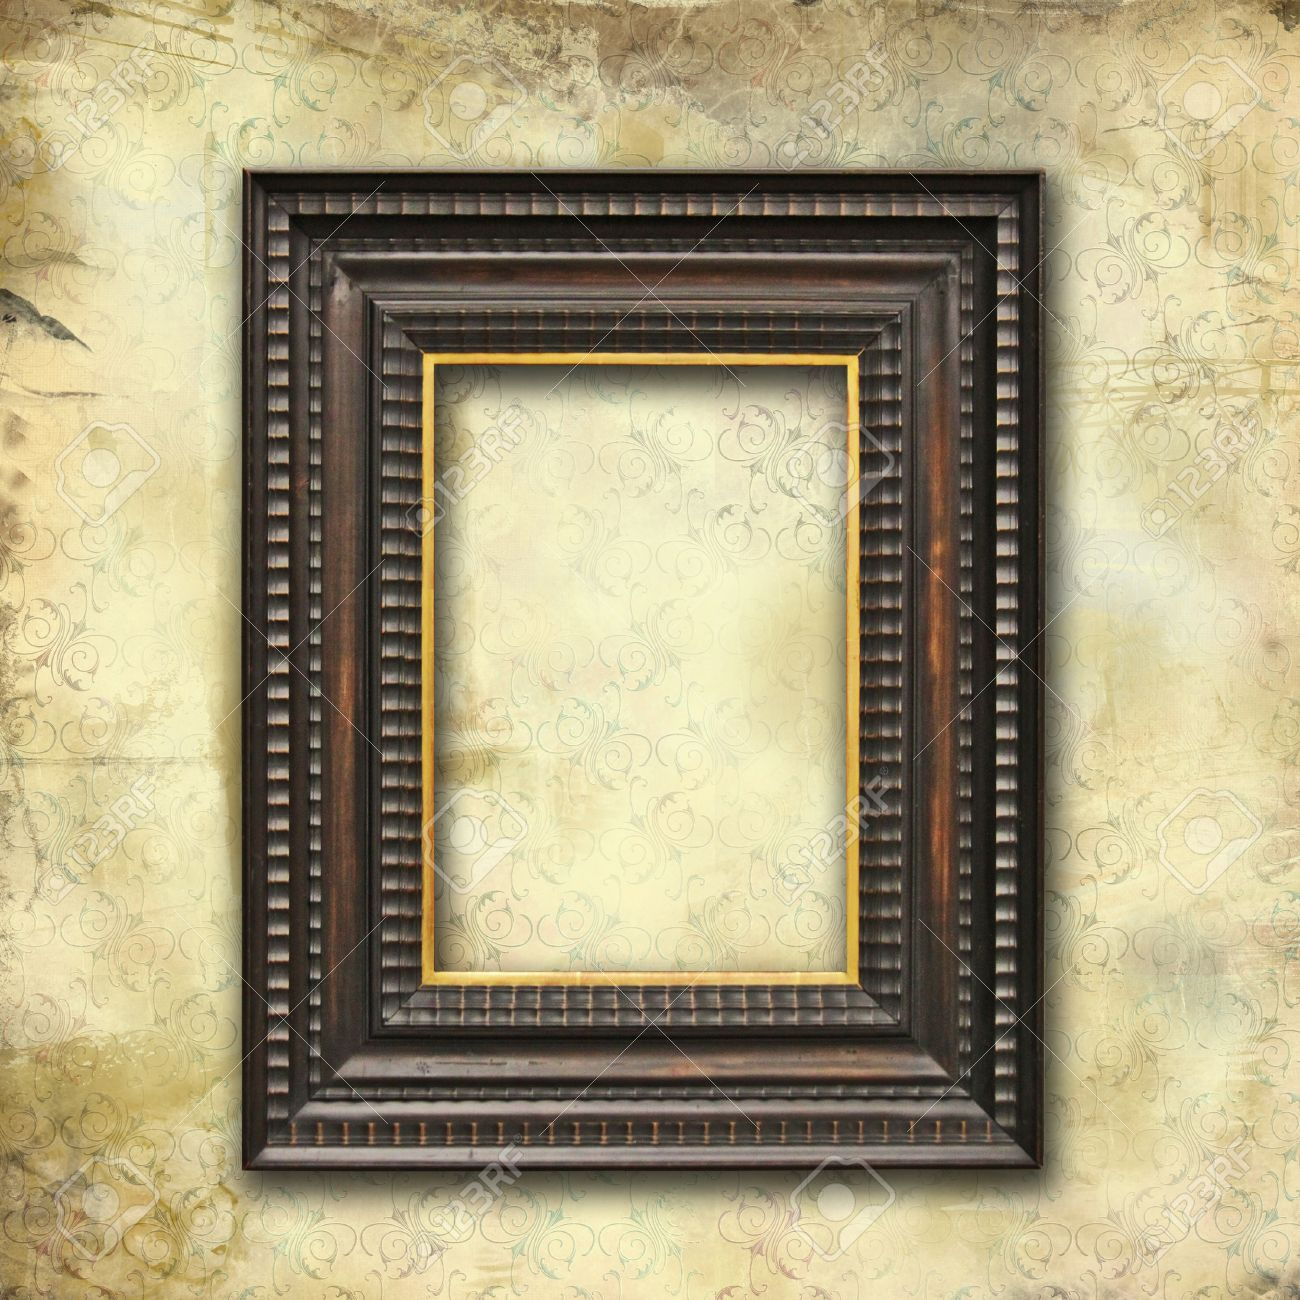 grunge faded wallpaper with old art deco empty frame Stock Photo - 14267422